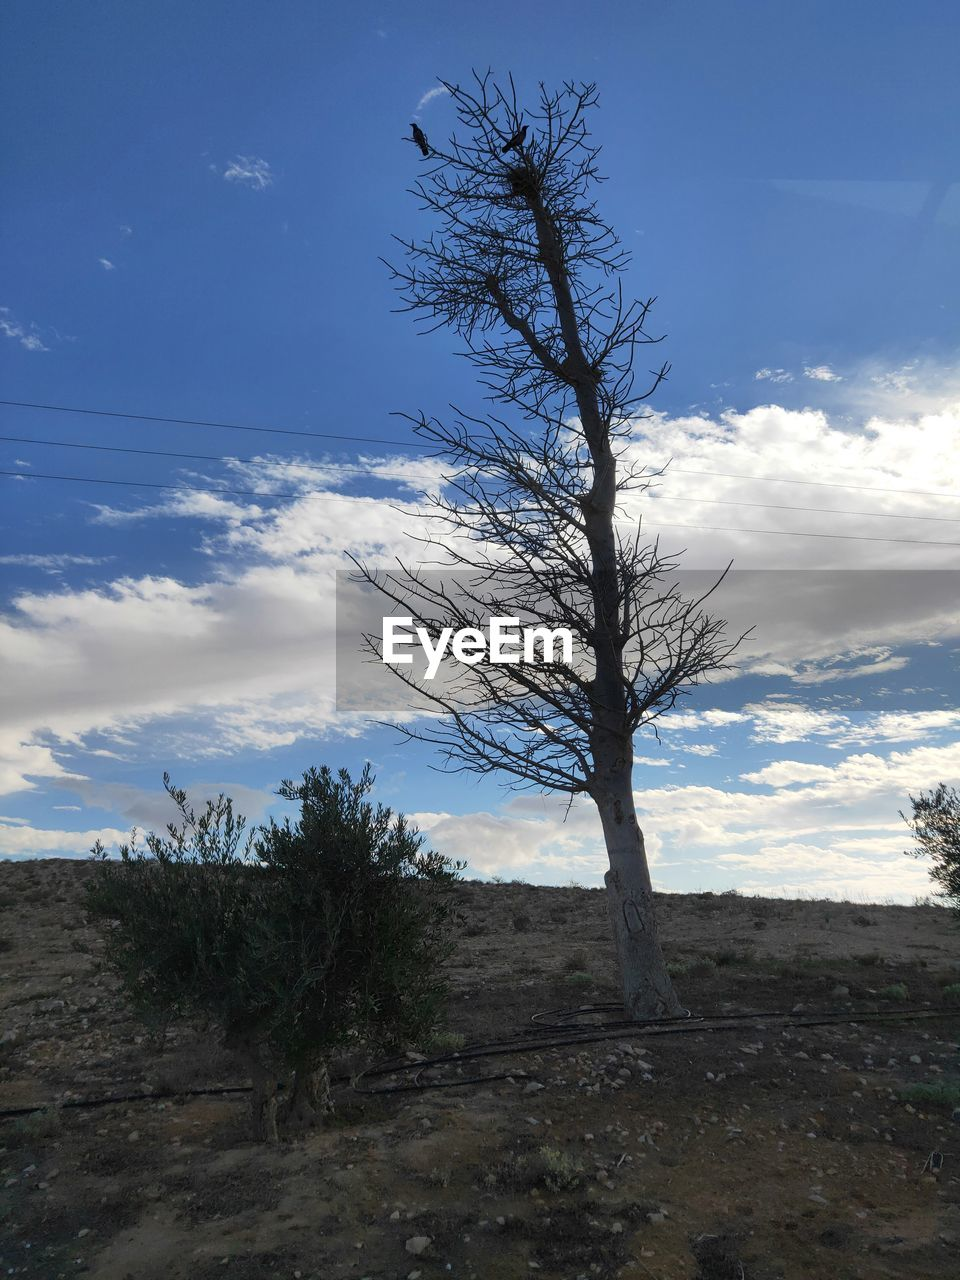 sky, cloud - sky, tree, plant, tranquility, tranquil scene, land, bare tree, beauty in nature, non-urban scene, field, no people, landscape, scenics - nature, environment, nature, day, outdoors, branch, growth, isolated, arid climate